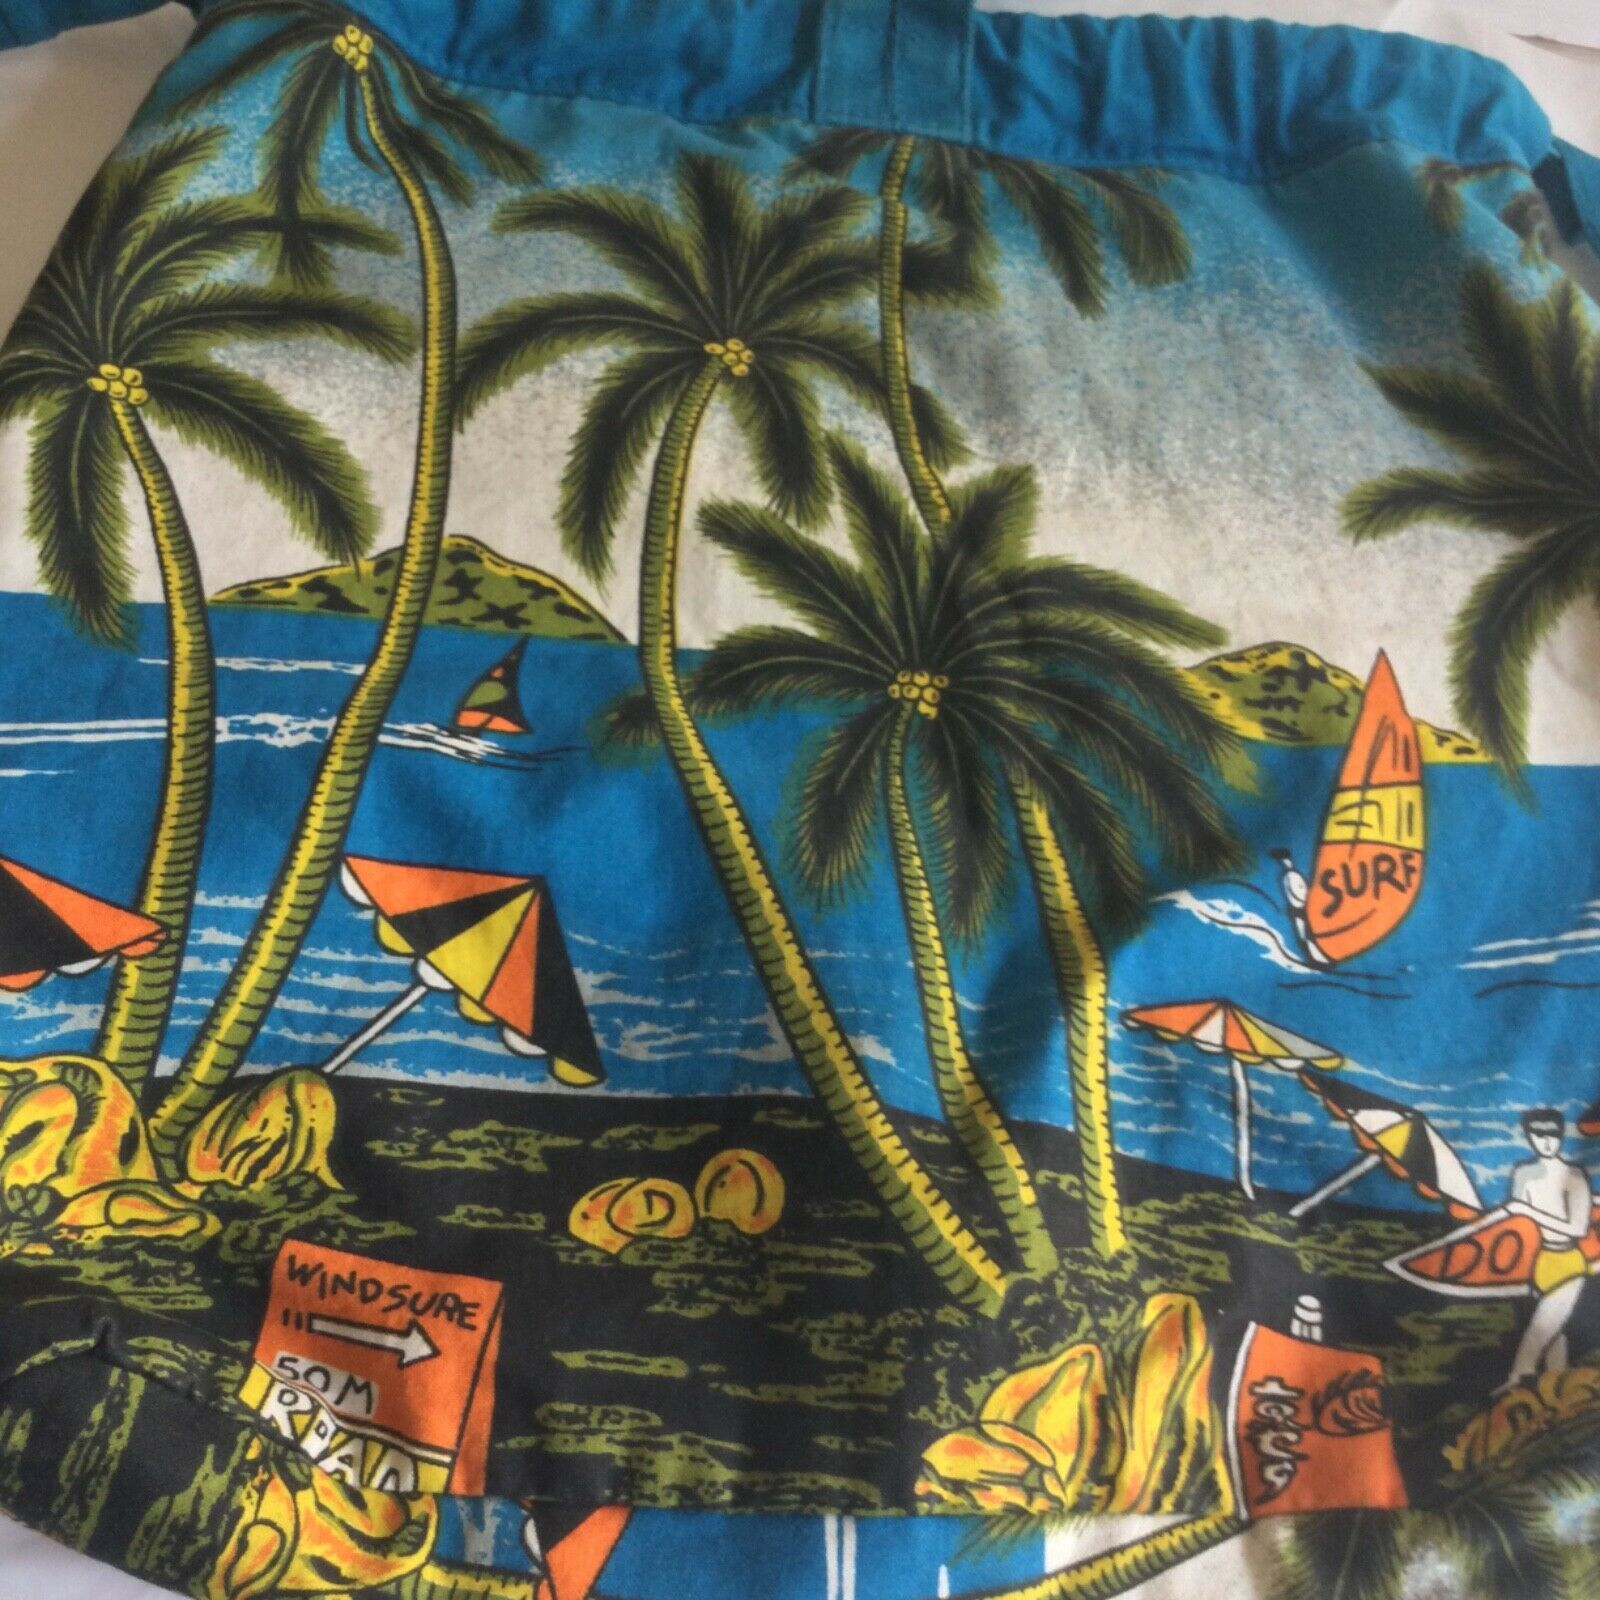 Bagpacks Beach Bag Palm trees and Ocean 14 in by 14 blue and